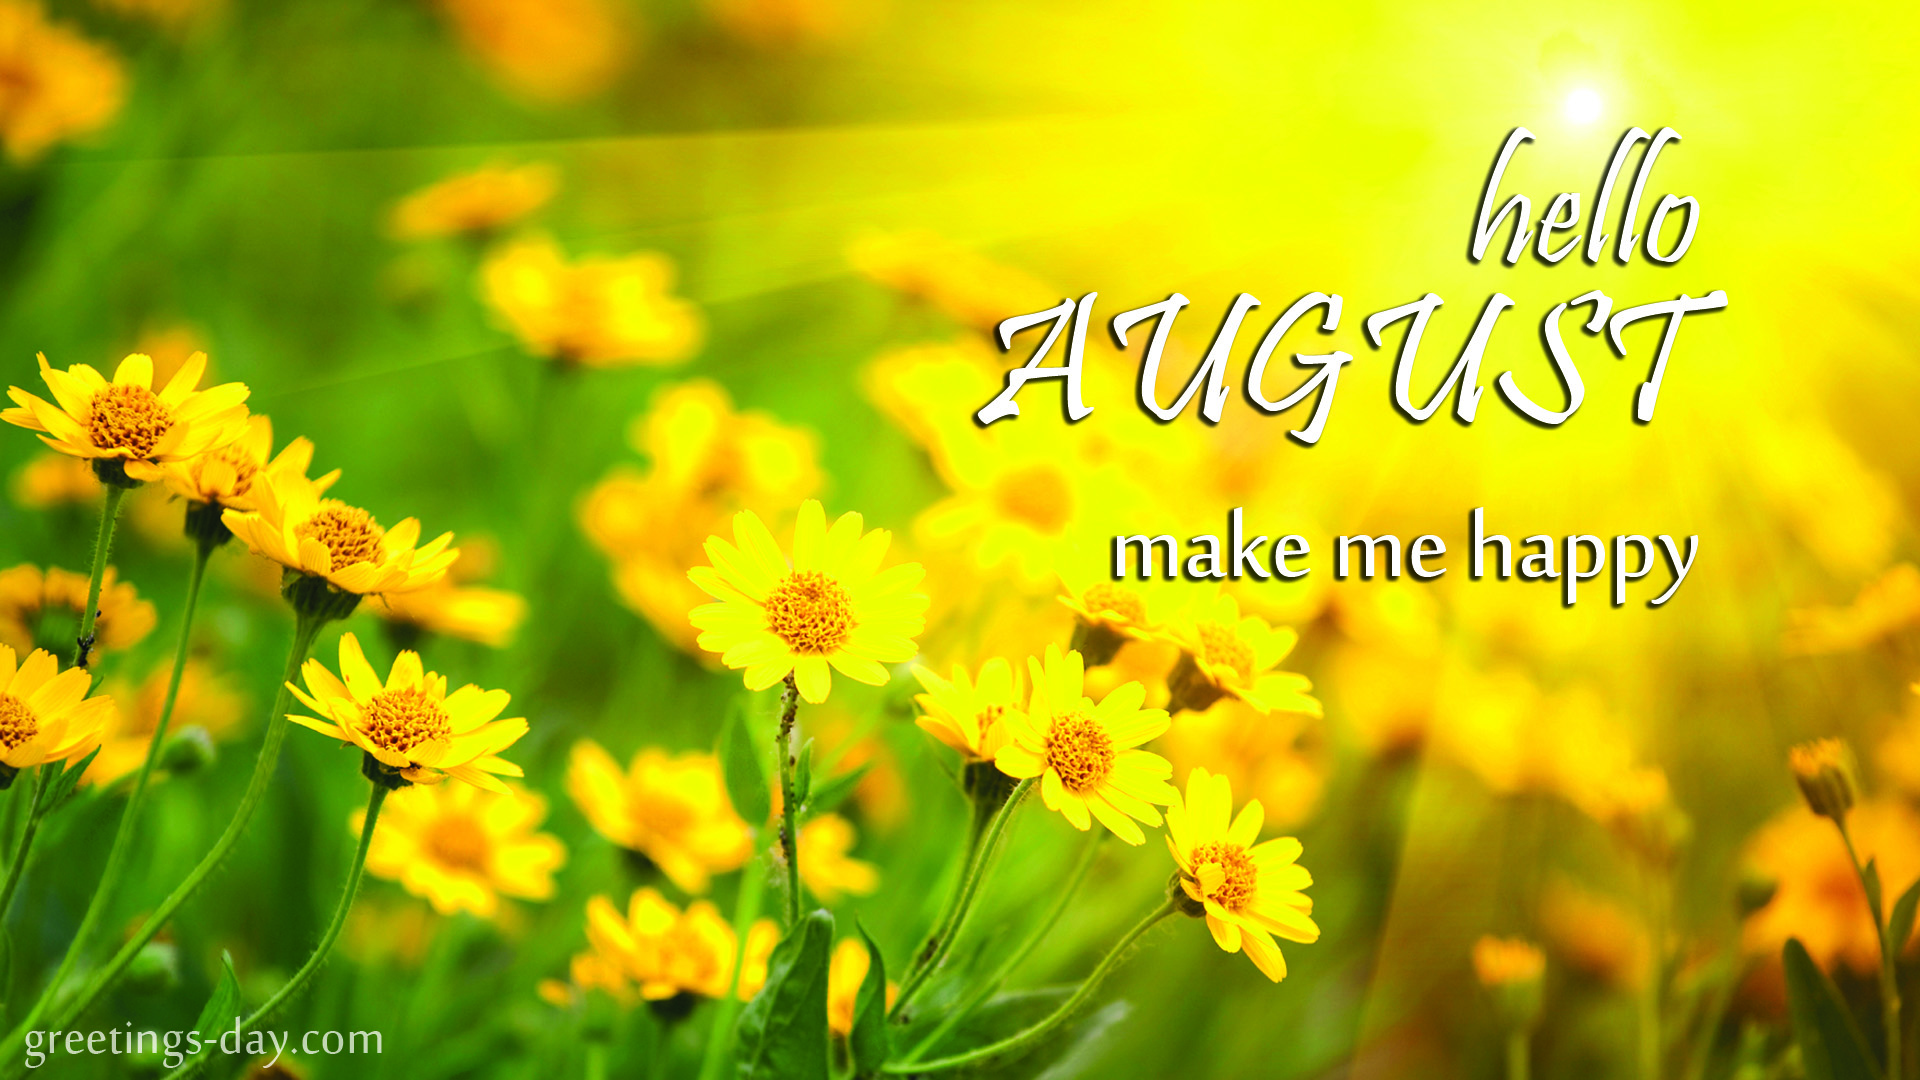 Hello AUGUST! - Free eCards, Wishes & Greetings. Good Morning Happy Monday Quotes